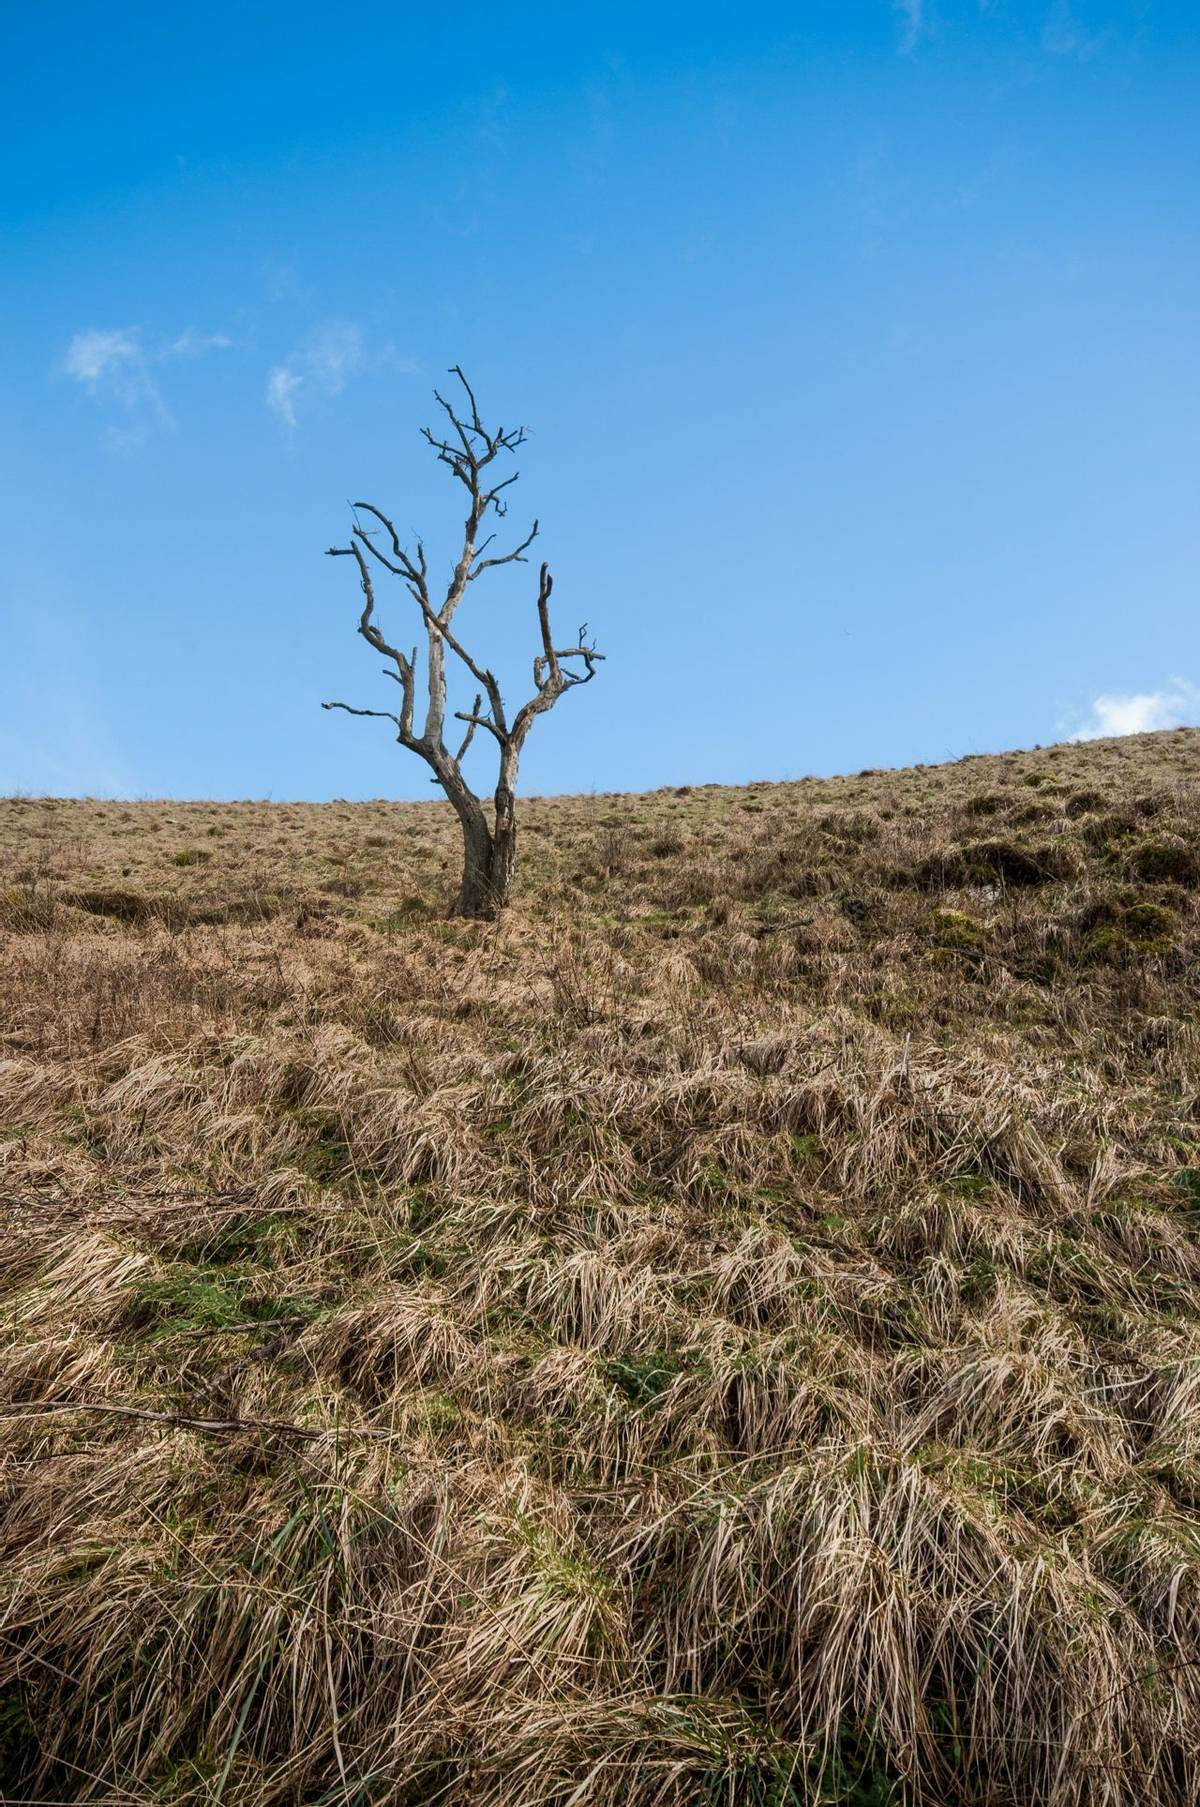 Solitary tree in Dovedale, Peak District National Park